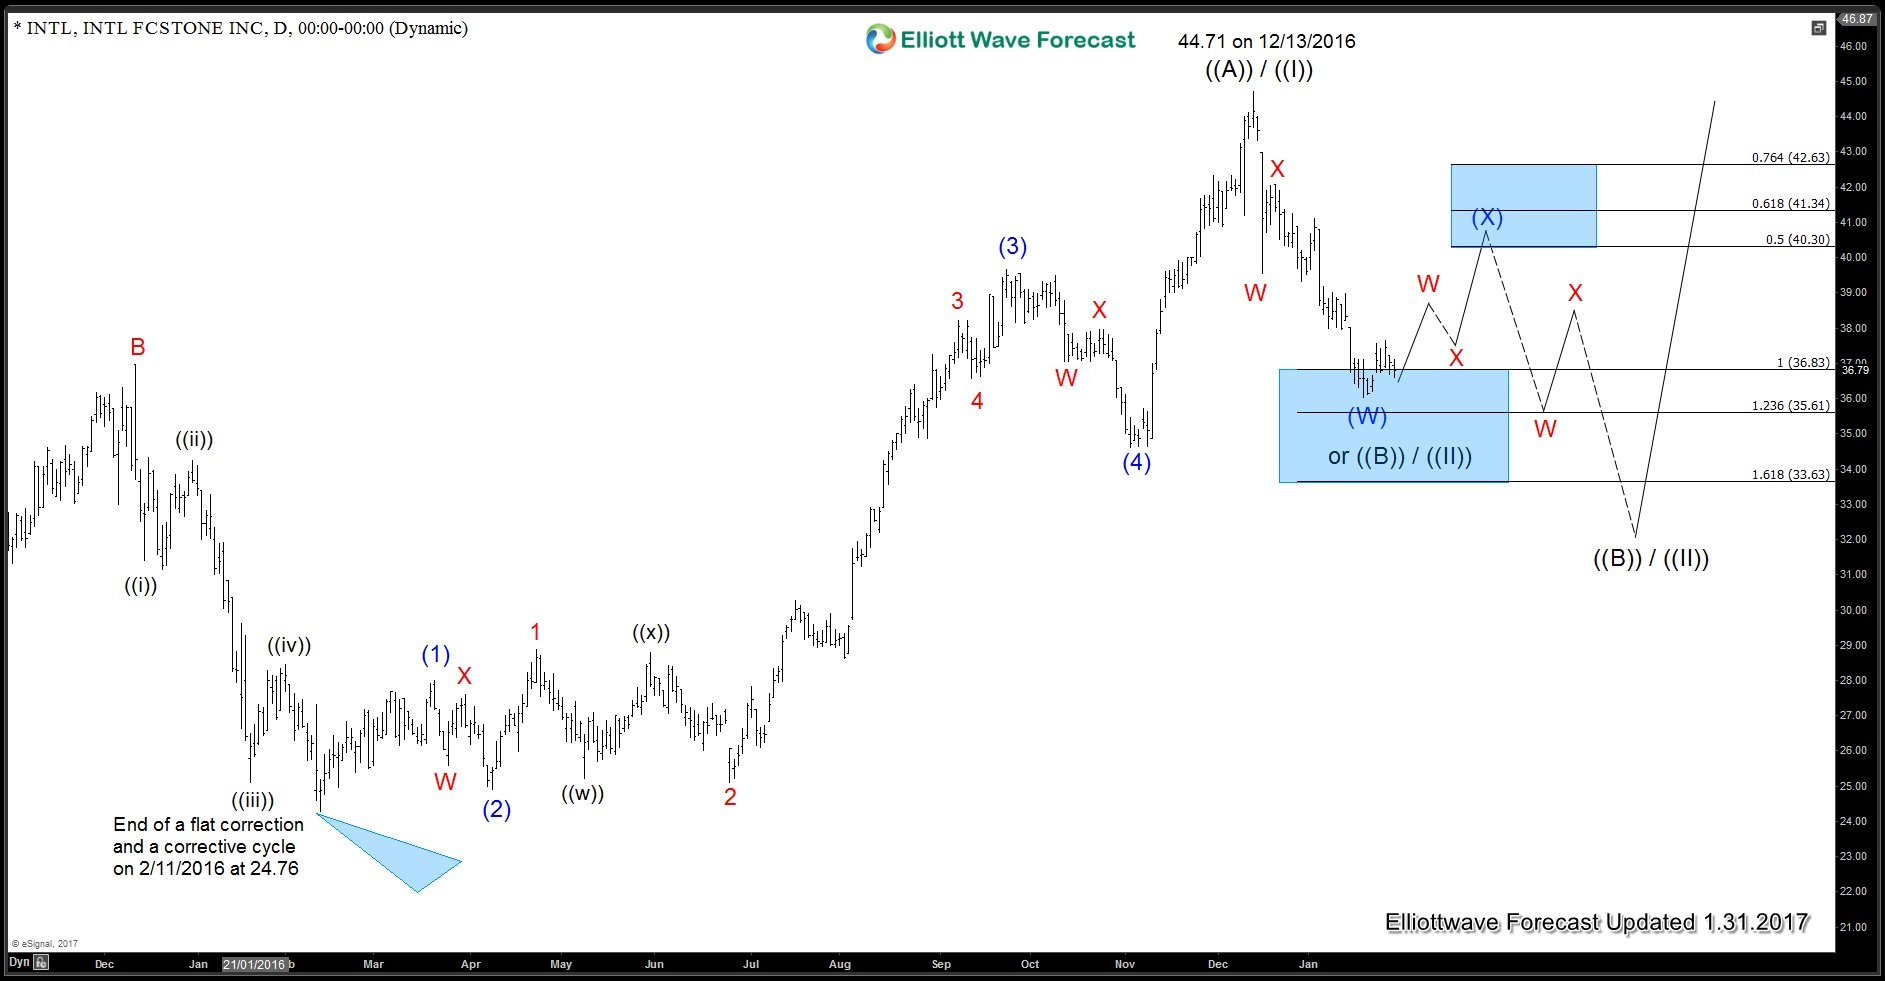 INTL Daily Elliott Wave Analysis